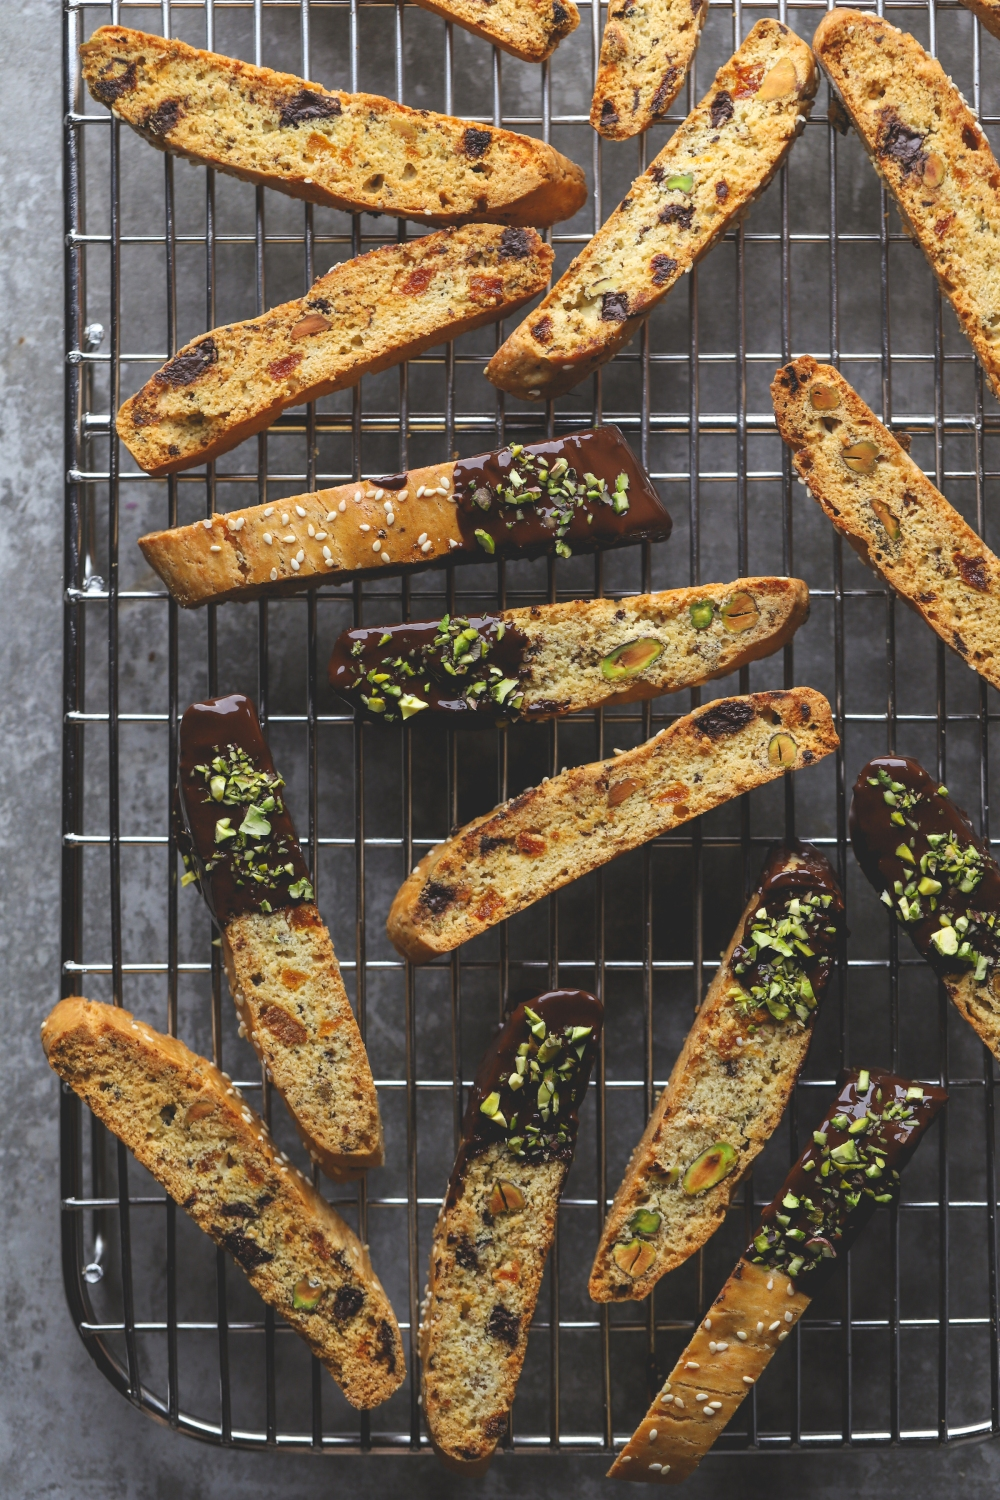 Best biscotti recipe 6.jpg